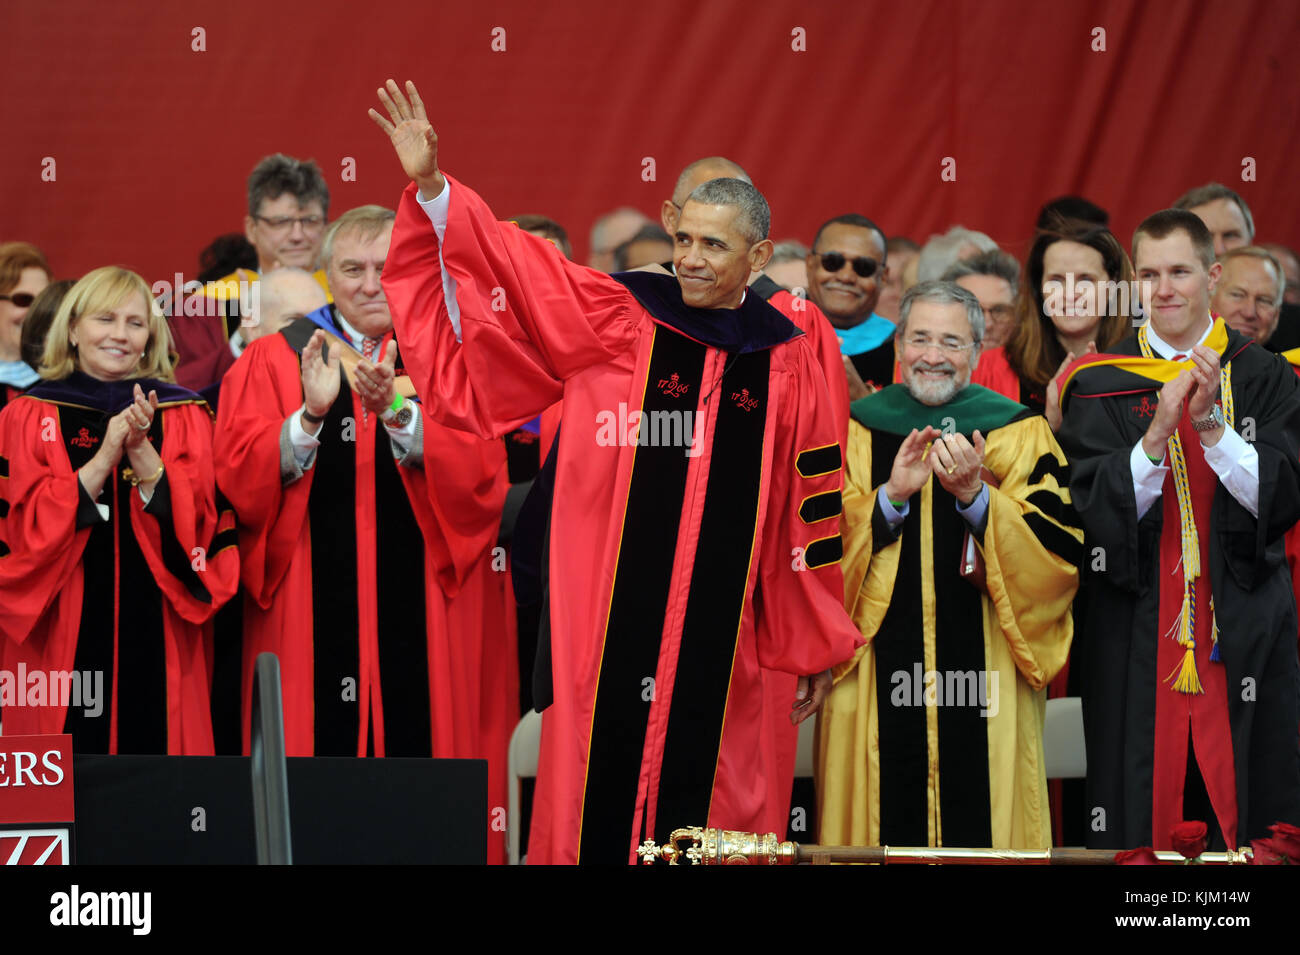 NEW BRUNSWICK, NJ - MAY 15: President Barack Obama receives honory degree from Rutgers President Robert Barchi and - Stock Image